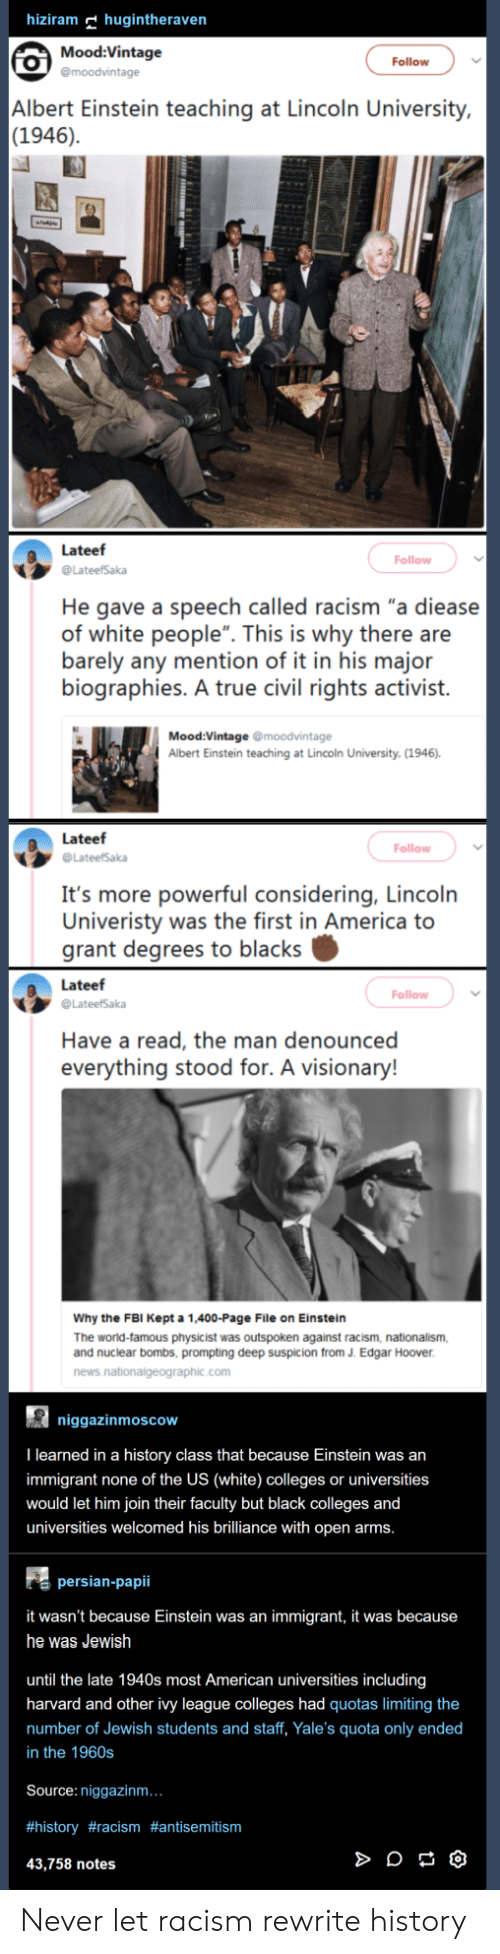 """Albert Einstein, America, and Fbi: hiziram hugintheraven  Mood:Vintage  Follow  Albert Einstein teaching at Lincoln University,  (1946)  Lateef  @LateefSaka  He gave a speech called racism """"a diease  of white people"""". This is why there are  barely any mention of it in his major  biographies. A true civil rights activist.  Follow  Mood:Vintage @moodvintage  Albert Einstein teaching at Lincoln University, (1946)  Lateef  @LateefSaka  Follow  It's more powerful considering, Lincoln  Univeristy was the first in America to  grant degrees to blacks  Lateef  Follow  Have a read, the man denounced  everything stood for. A visionary!  Why the FBI Kept a 1,400-Page File on Einstein  The world-famous physicist was outspoken against racism, nationalism,  and nuclear bombs, prompting deep suspicion from J. Edgar Hoover  news  com  niggazinmoscow  I learned in a history class that because Einstein was an  immigrant none of the US (white) colleges or universities  would let him join their faculty but black colleges and  universities welcomed his brilliance with open arms  persian-papii  it wasn't because Einstein was an immigrant, it was because  he was Jewish  until the late 1940s most American universities including  harvard and other ivy league colleges had quotas limiting the  mber of Jewish students and staff, Yale's quota only ended  in the 1960s  Source: niggazinm  #history #racism #antisemitism  43,758 notes Never let racism rewrite history"""